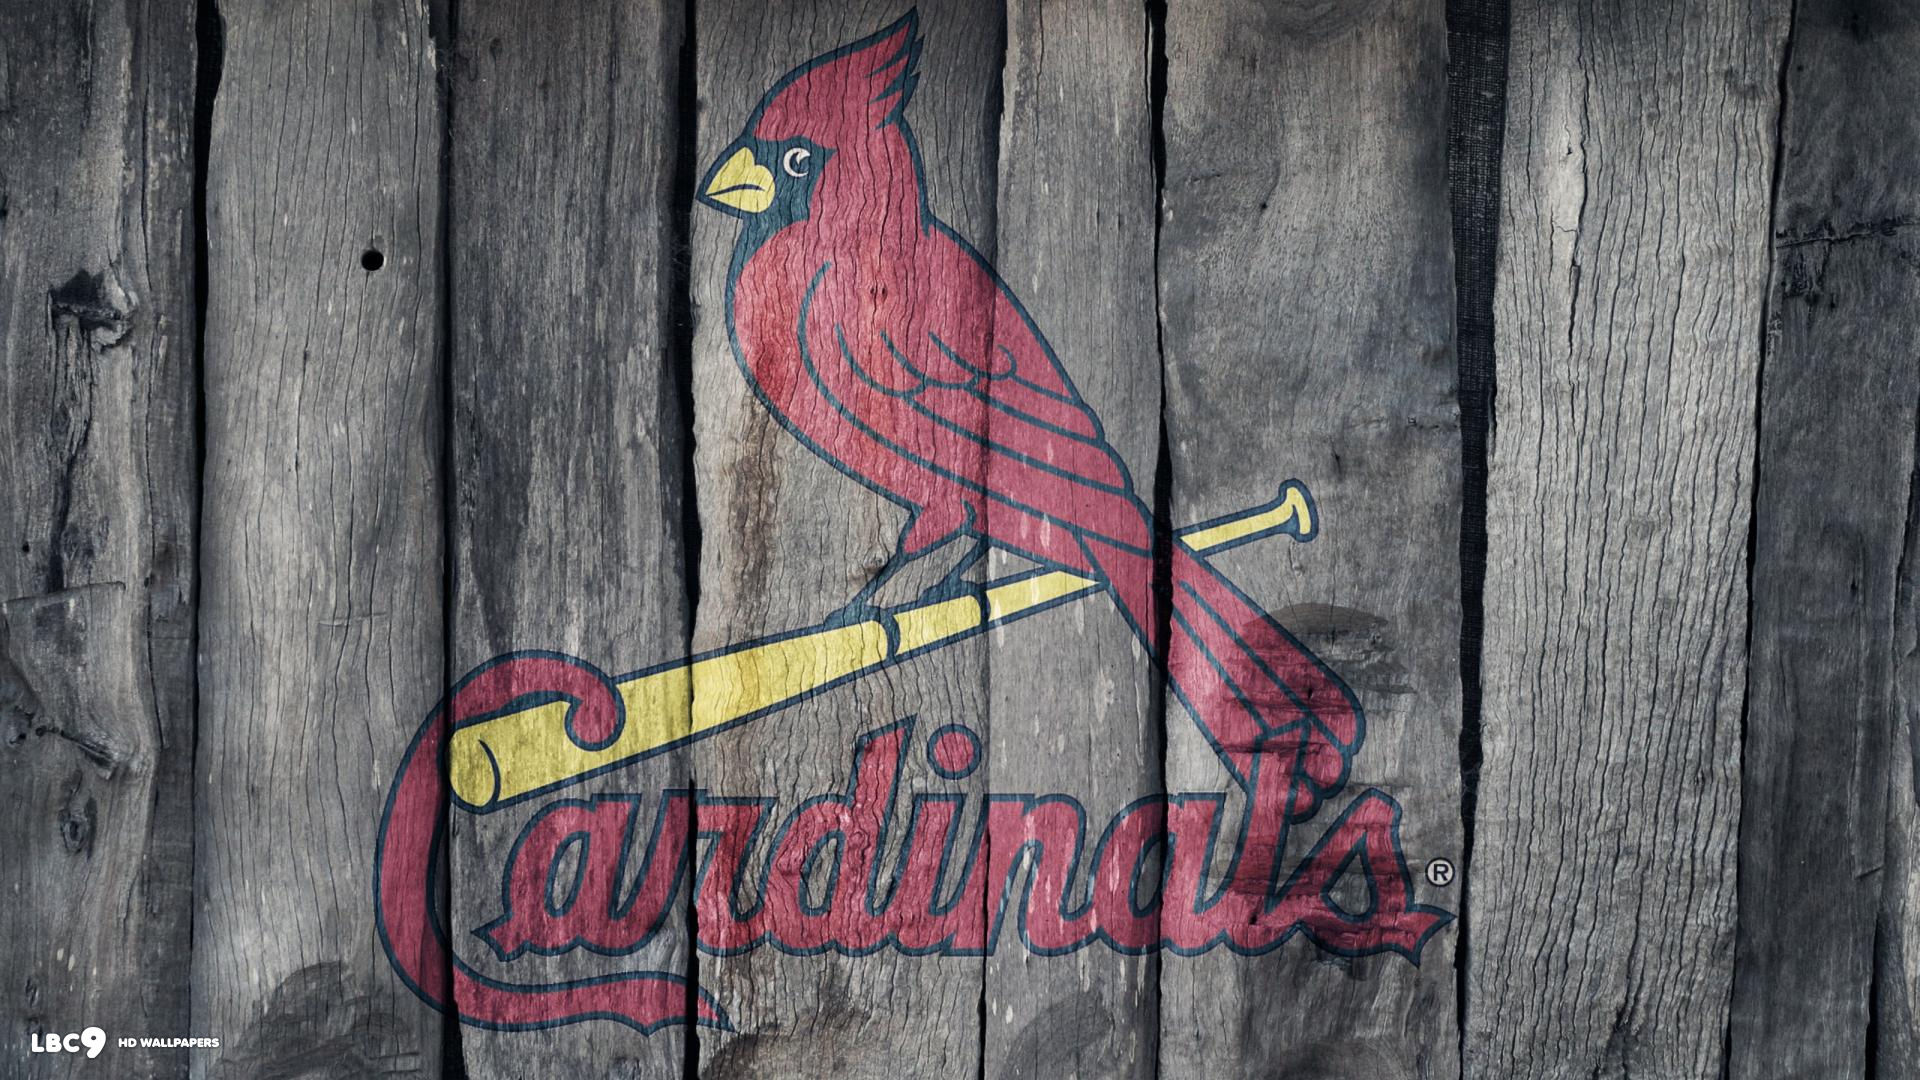 st louis cardinals. Wallpaper ...